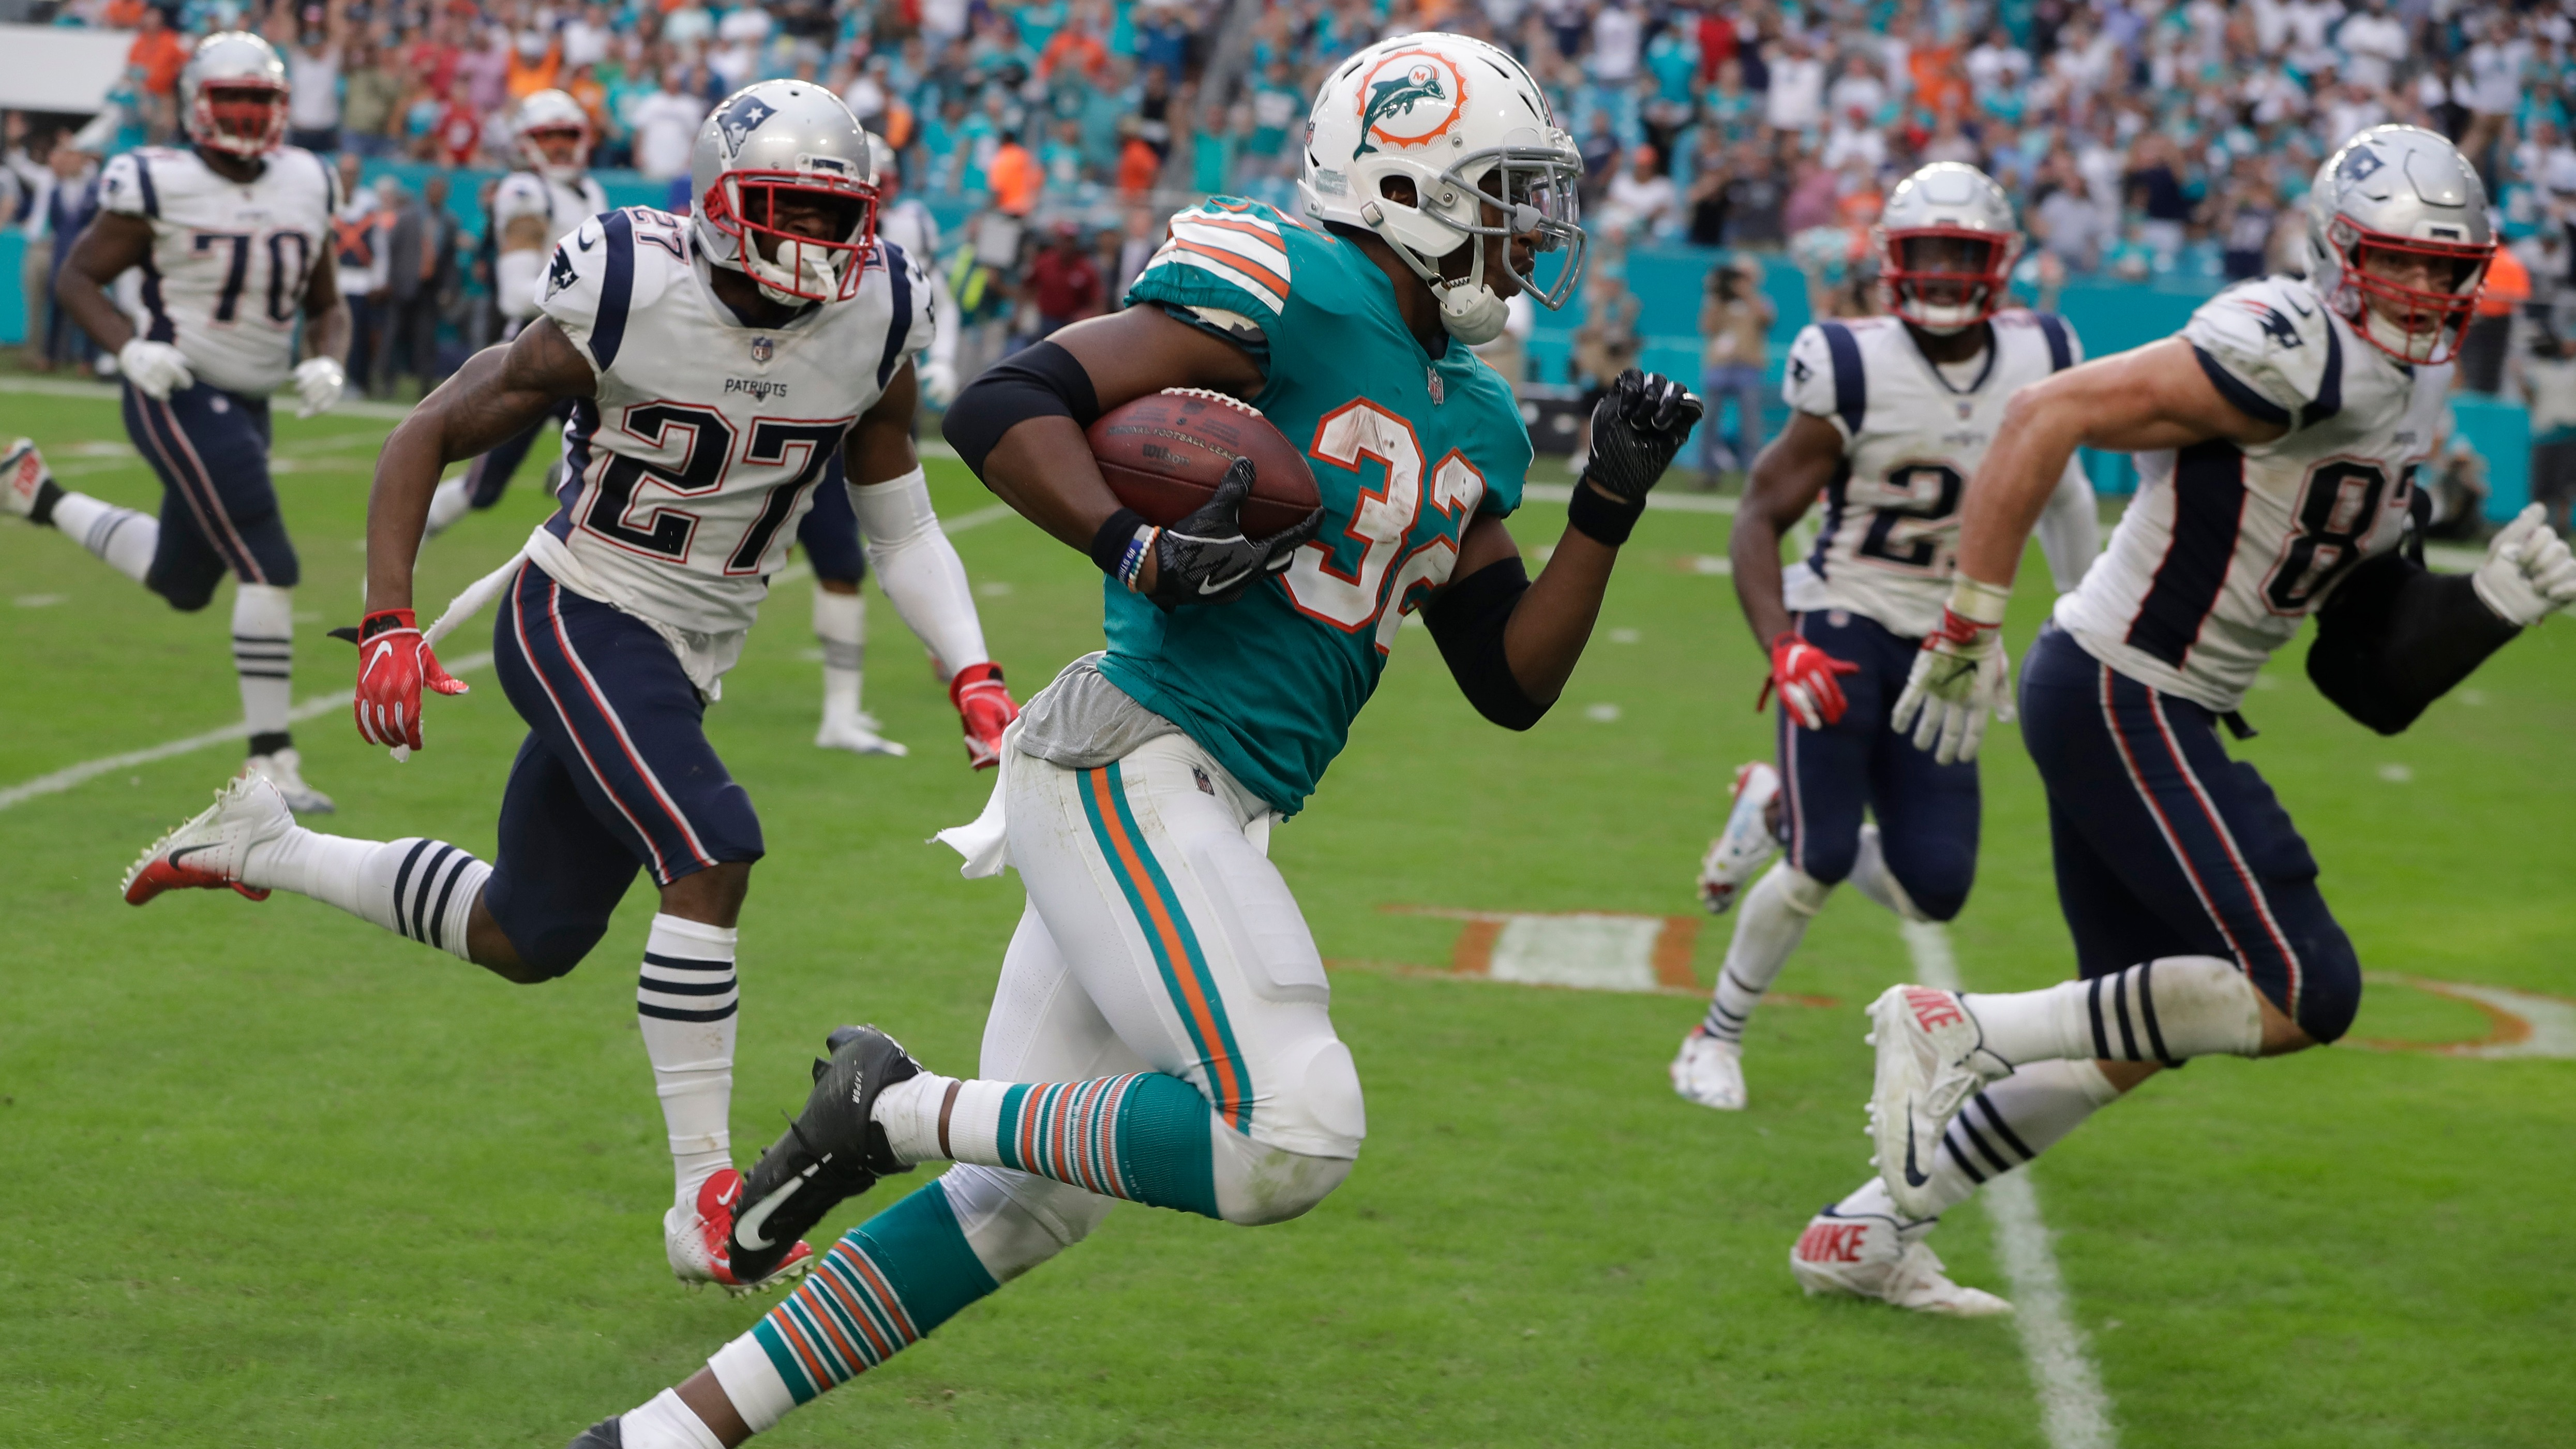 Nfl Week 14 Betting Recap Bad Beats Upsets And Crazy Finishes Highlighted By Miracle In Miami